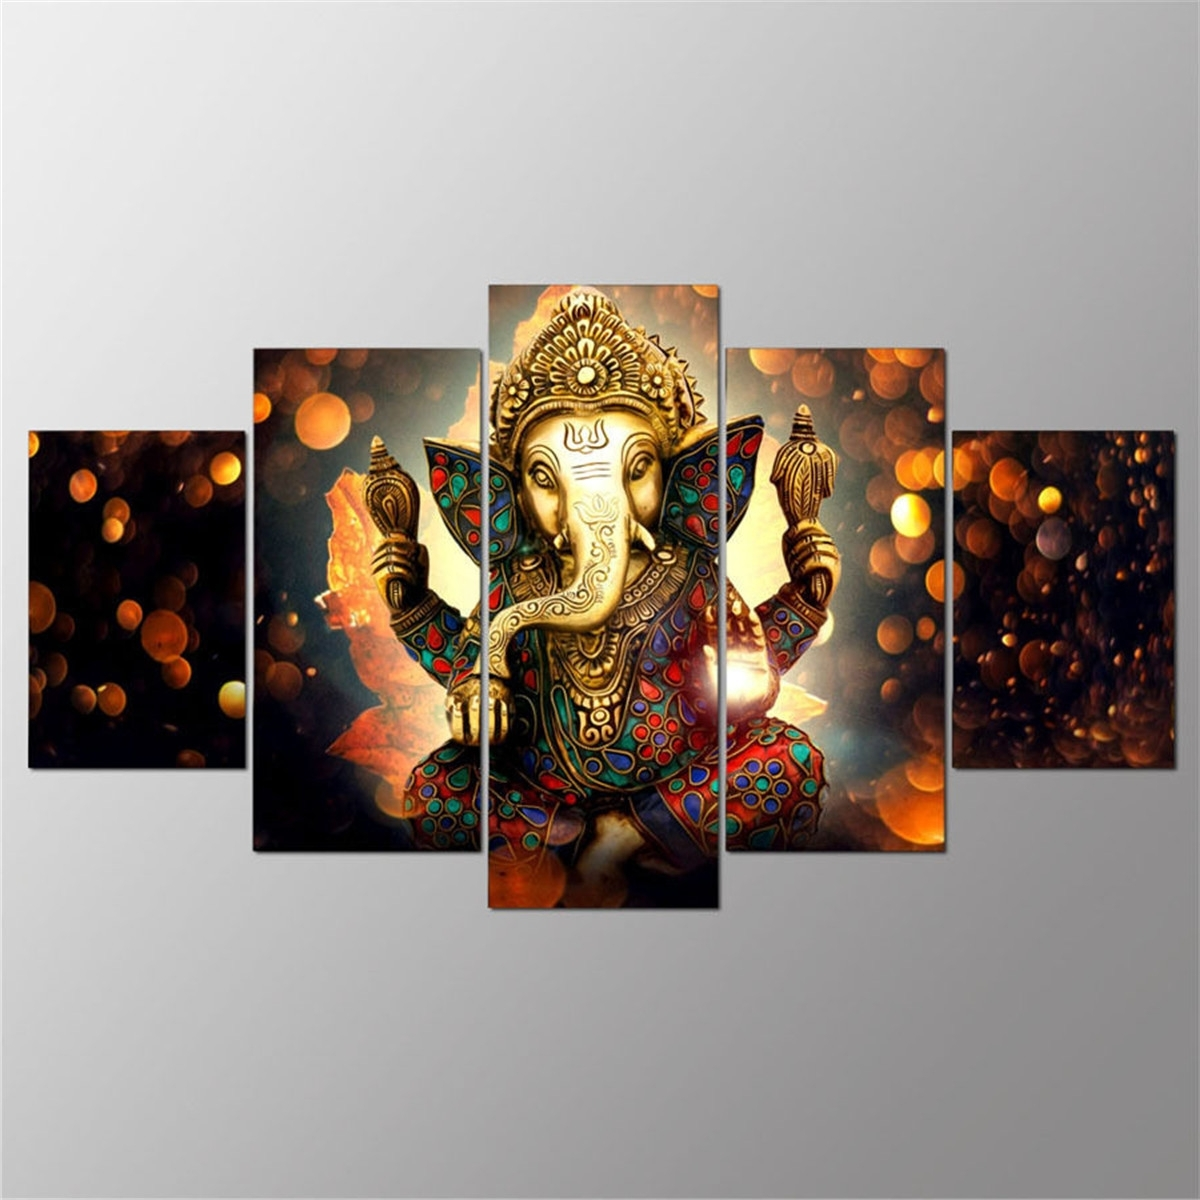 5Pcs Ganesha India Canvas Painting Print Modern Wall Art Poster Regarding Recent India Canvas Wall Art (View 4 of 15)